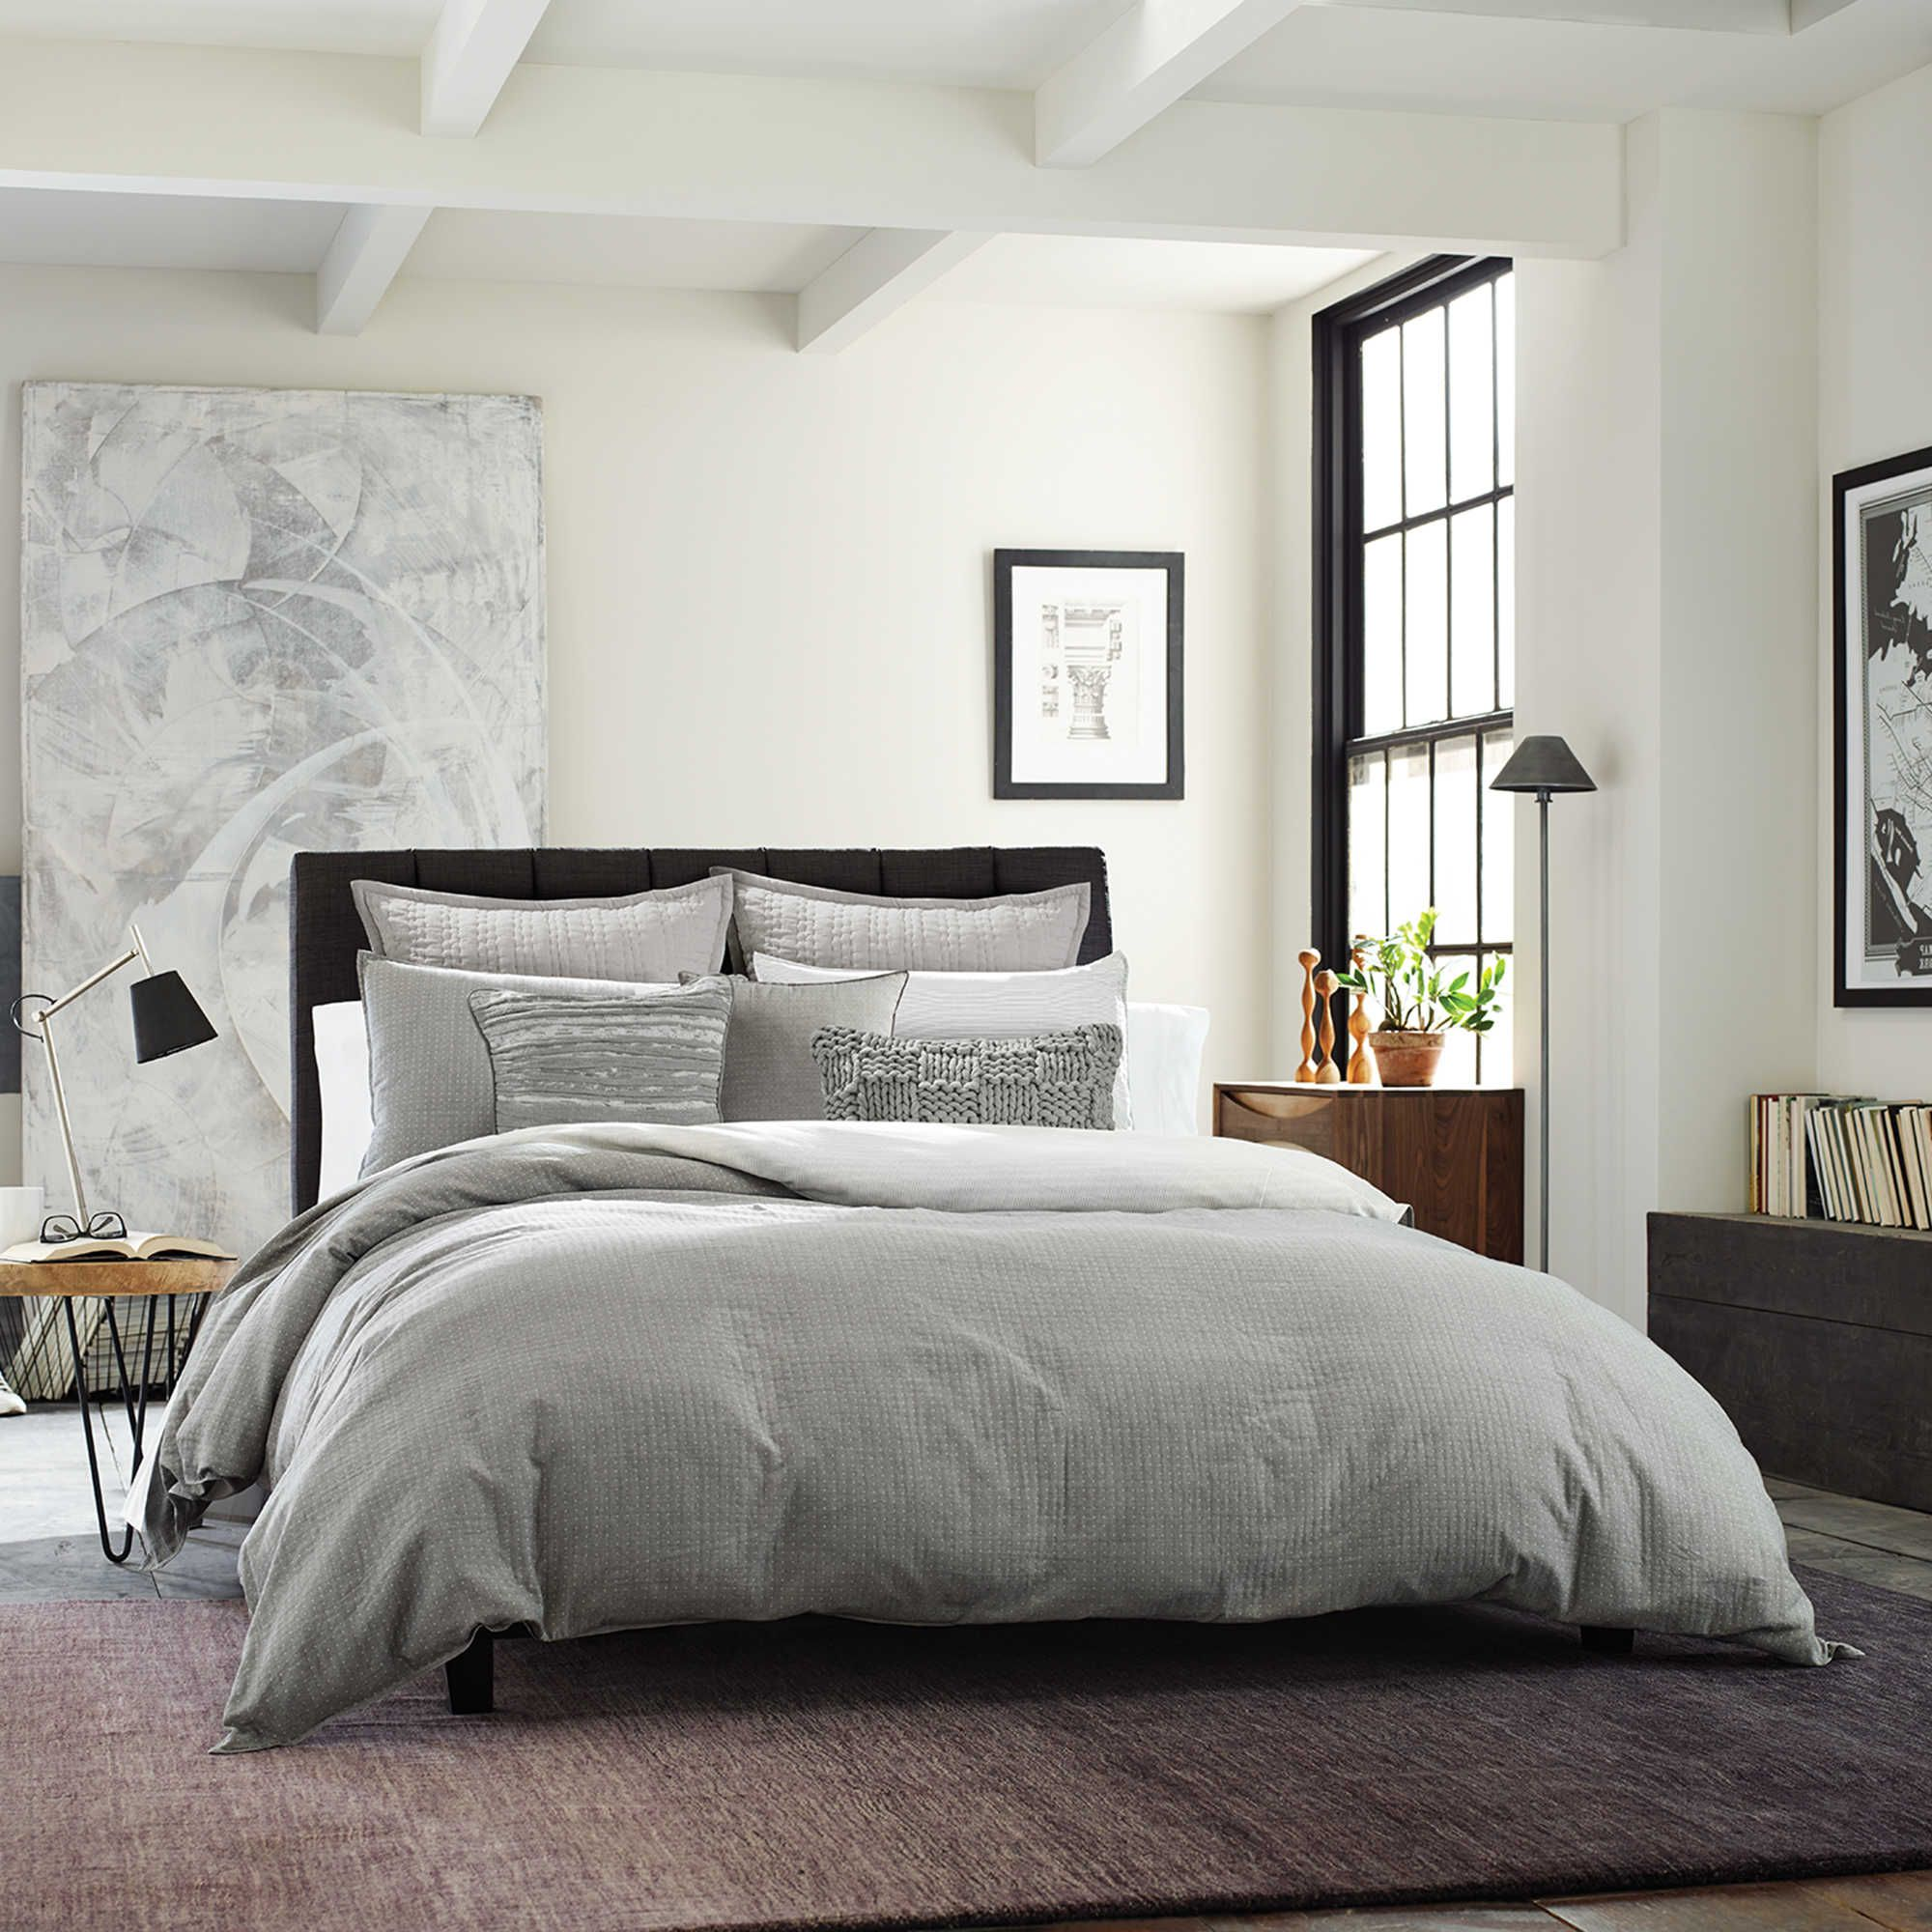 transform your napping session to a tranquil experience with the timeless look of kenneth cole new yorku0026 dovetail duvet cover in a soothing color palette